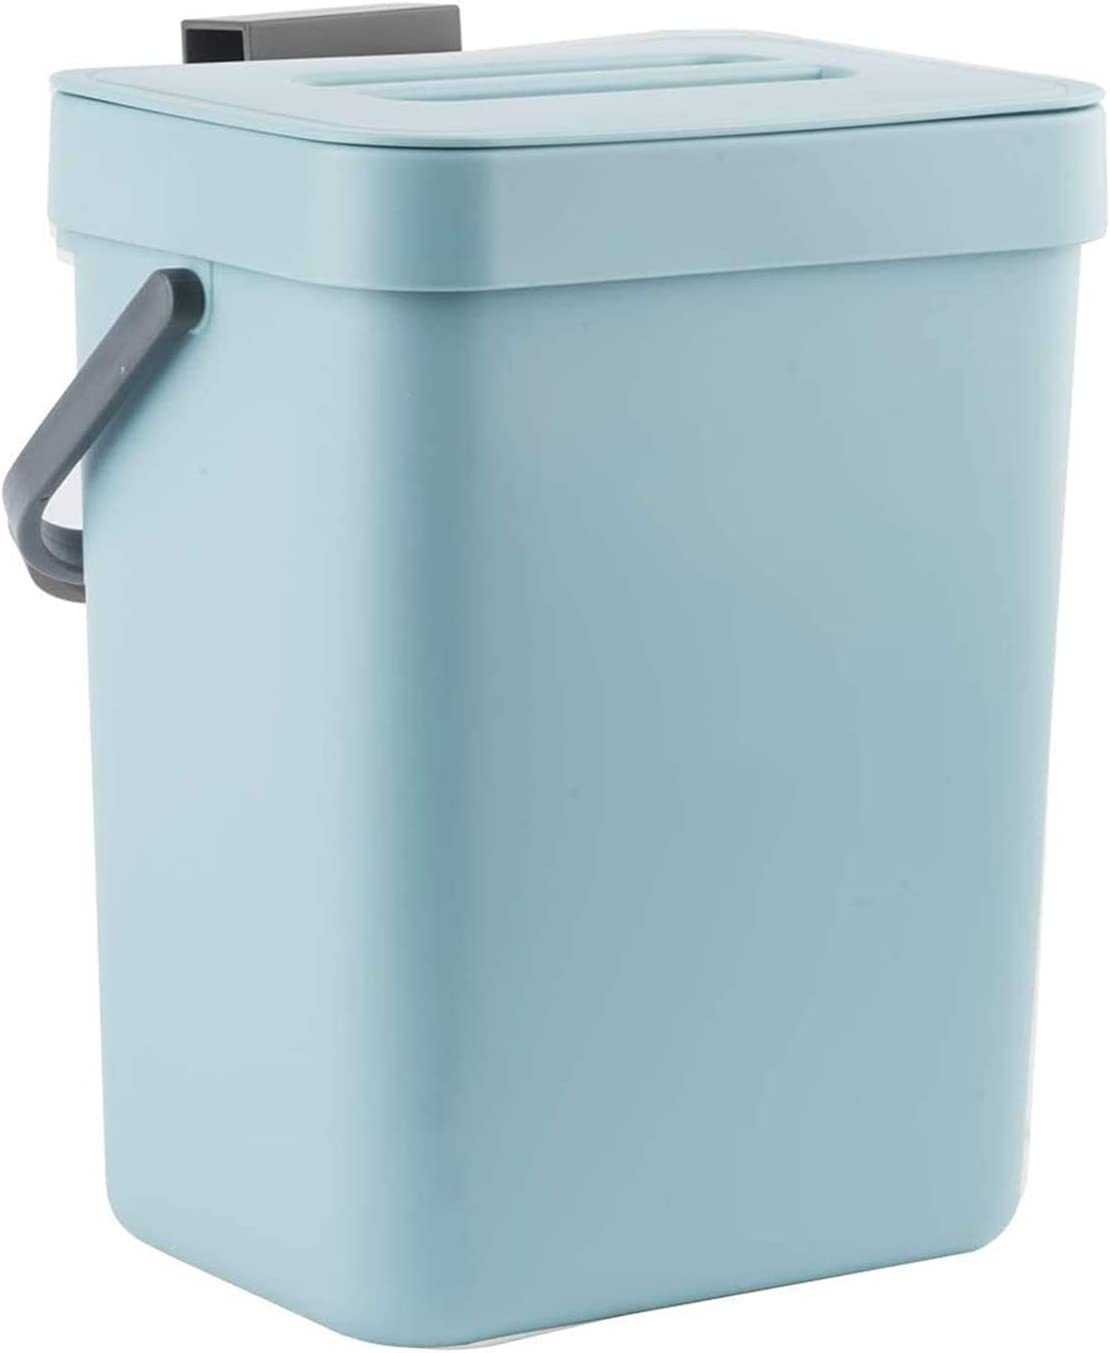 LALASTAR Small Trash Can with Lid, Odorless Mini Trash Can, Plastic Hanging Waste Basket for RV/Office/Bedroom/Dorm, 3L/0.8 Gal, Blue